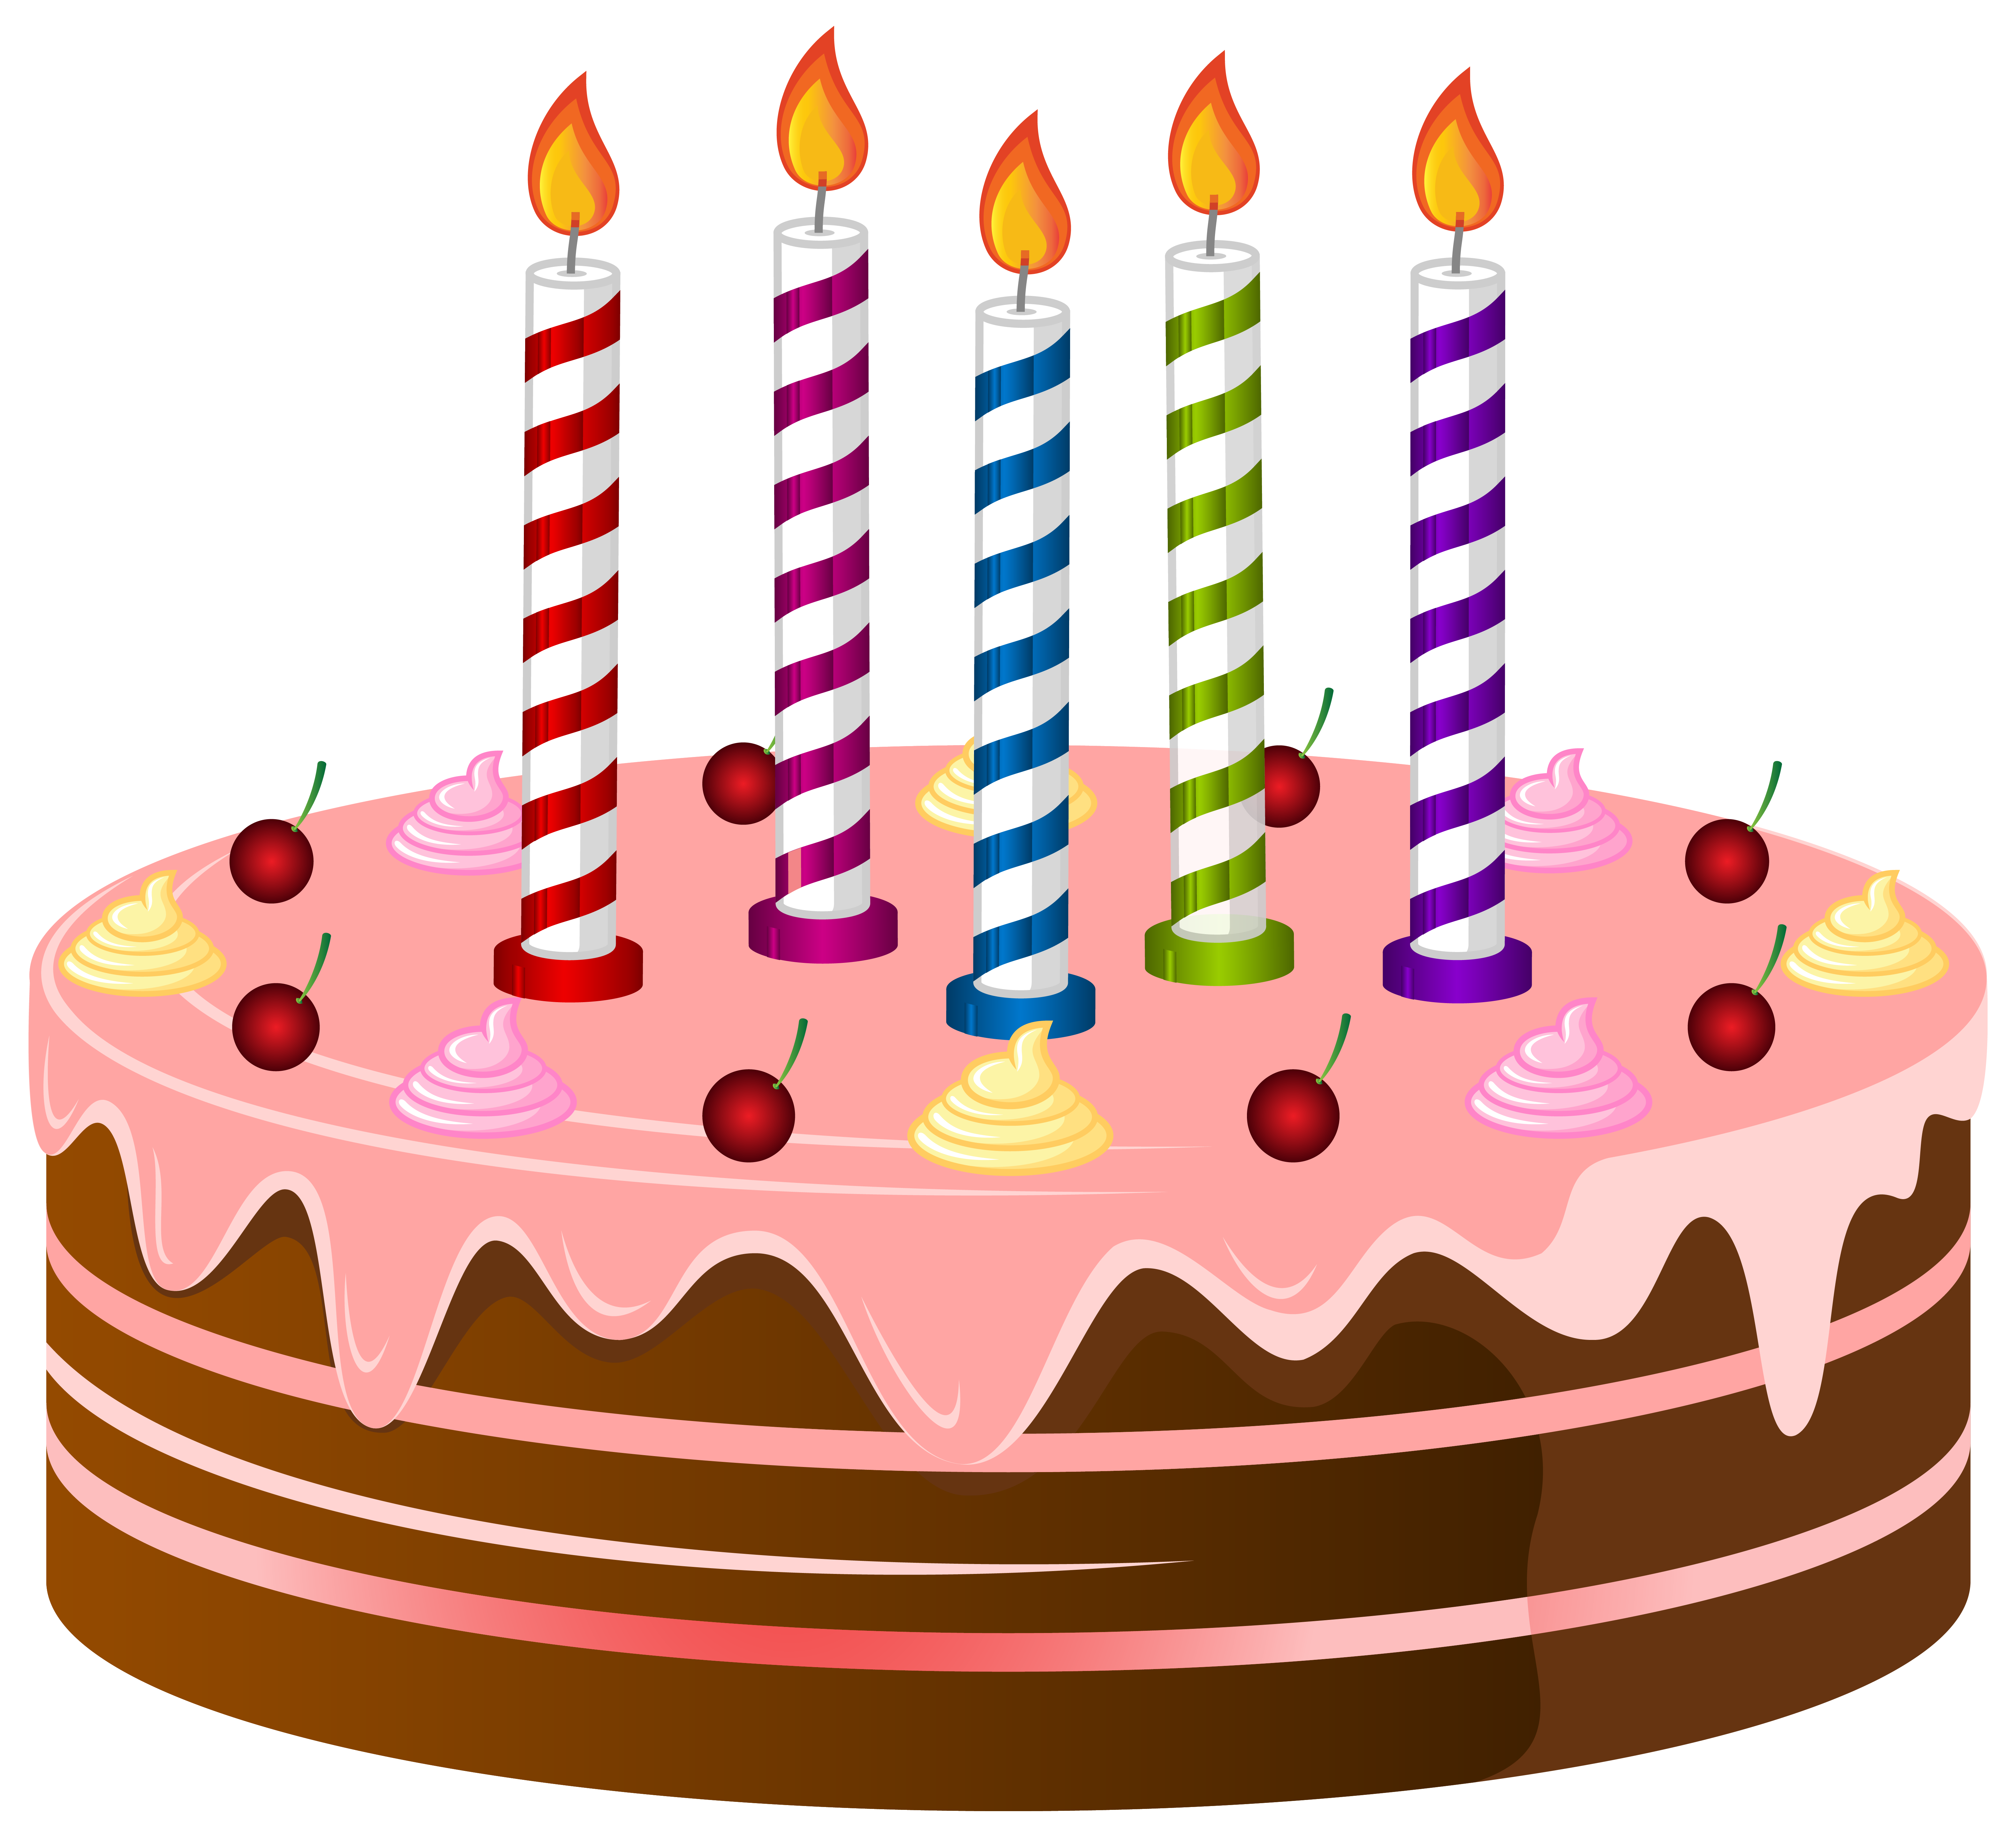 Clipart Birthday Cake Clipart Birthday C-Clipart Birthday Cake Clipart Birthday Cake-14